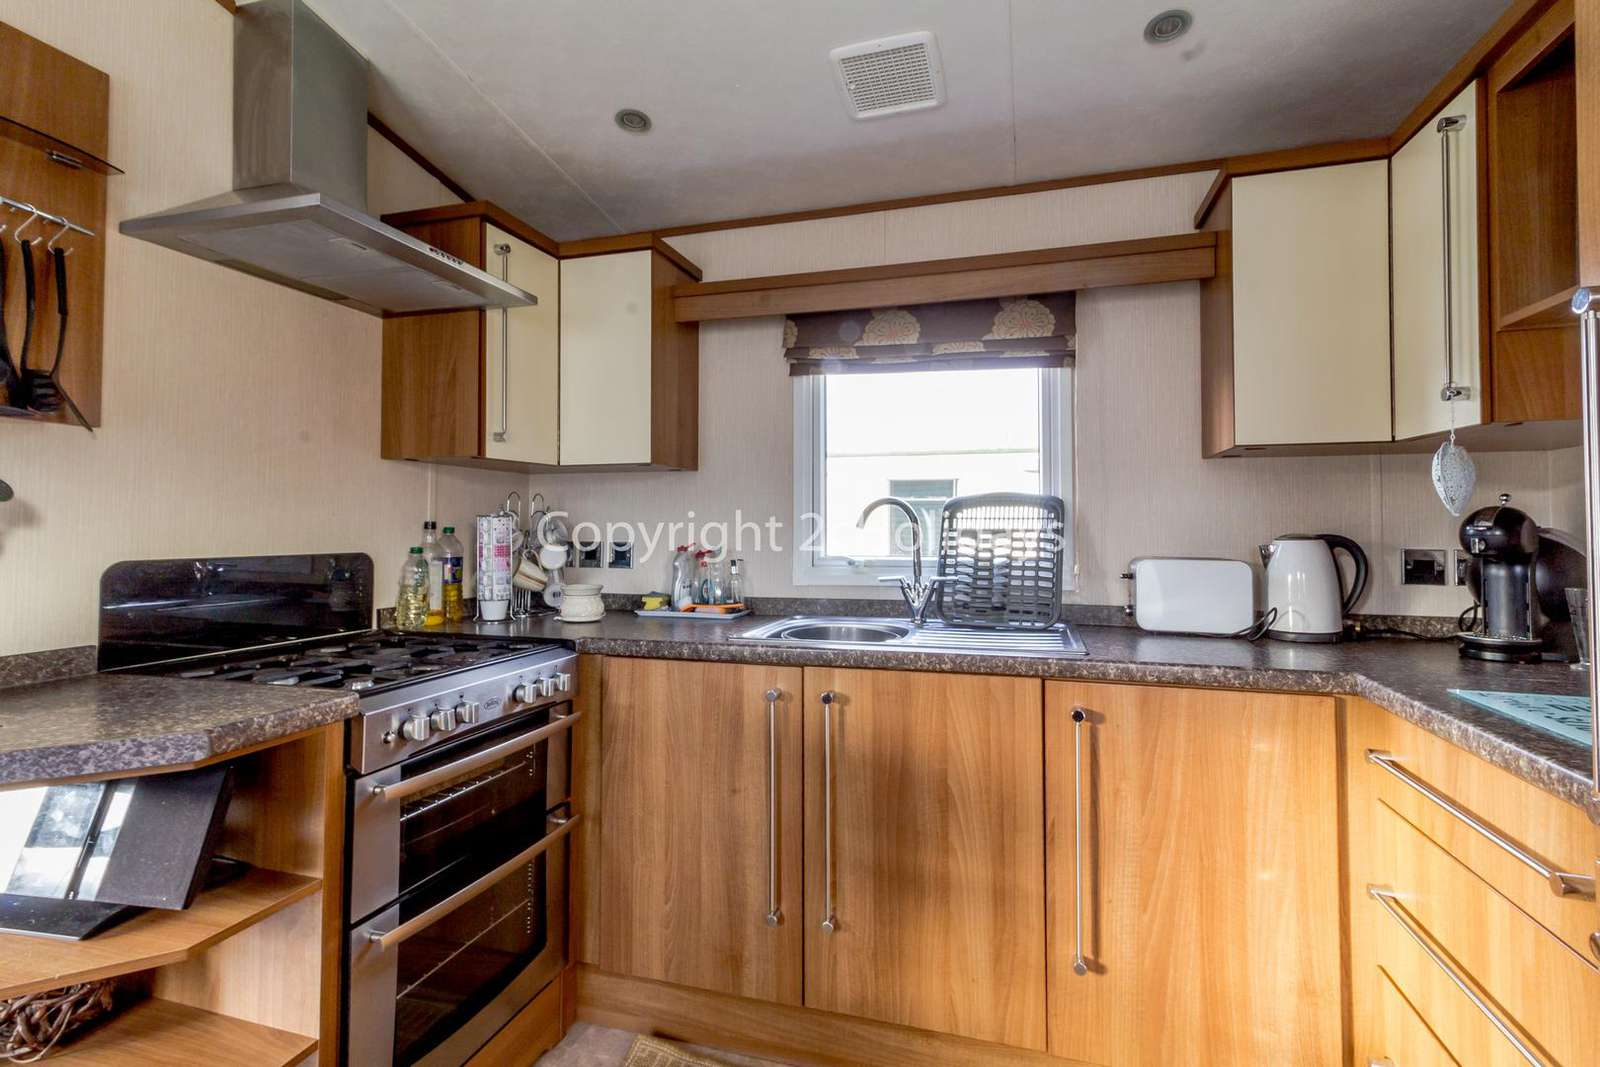 This kitchen includes a full size oven/hob and integrated fridge/freezer!